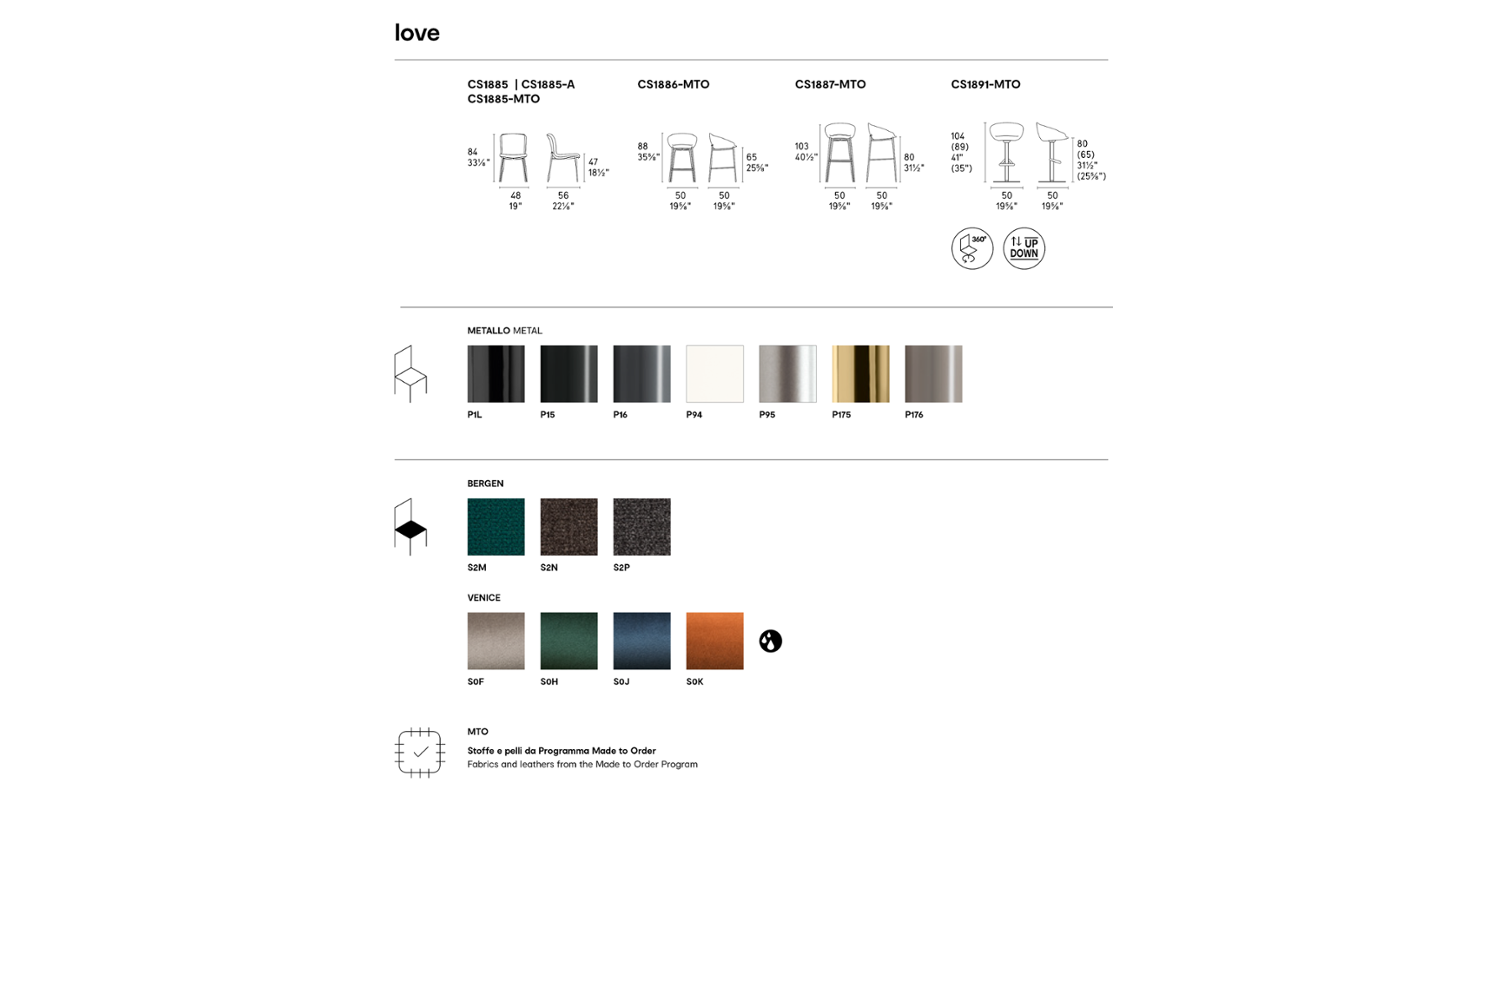 LOVE CHAIR SCHEMATIC CALLIGARIS LOVE CHAIR SCHEMATIC CALLIGARIS LOVE CHAIR SCHEMATIC CALLIGARIS